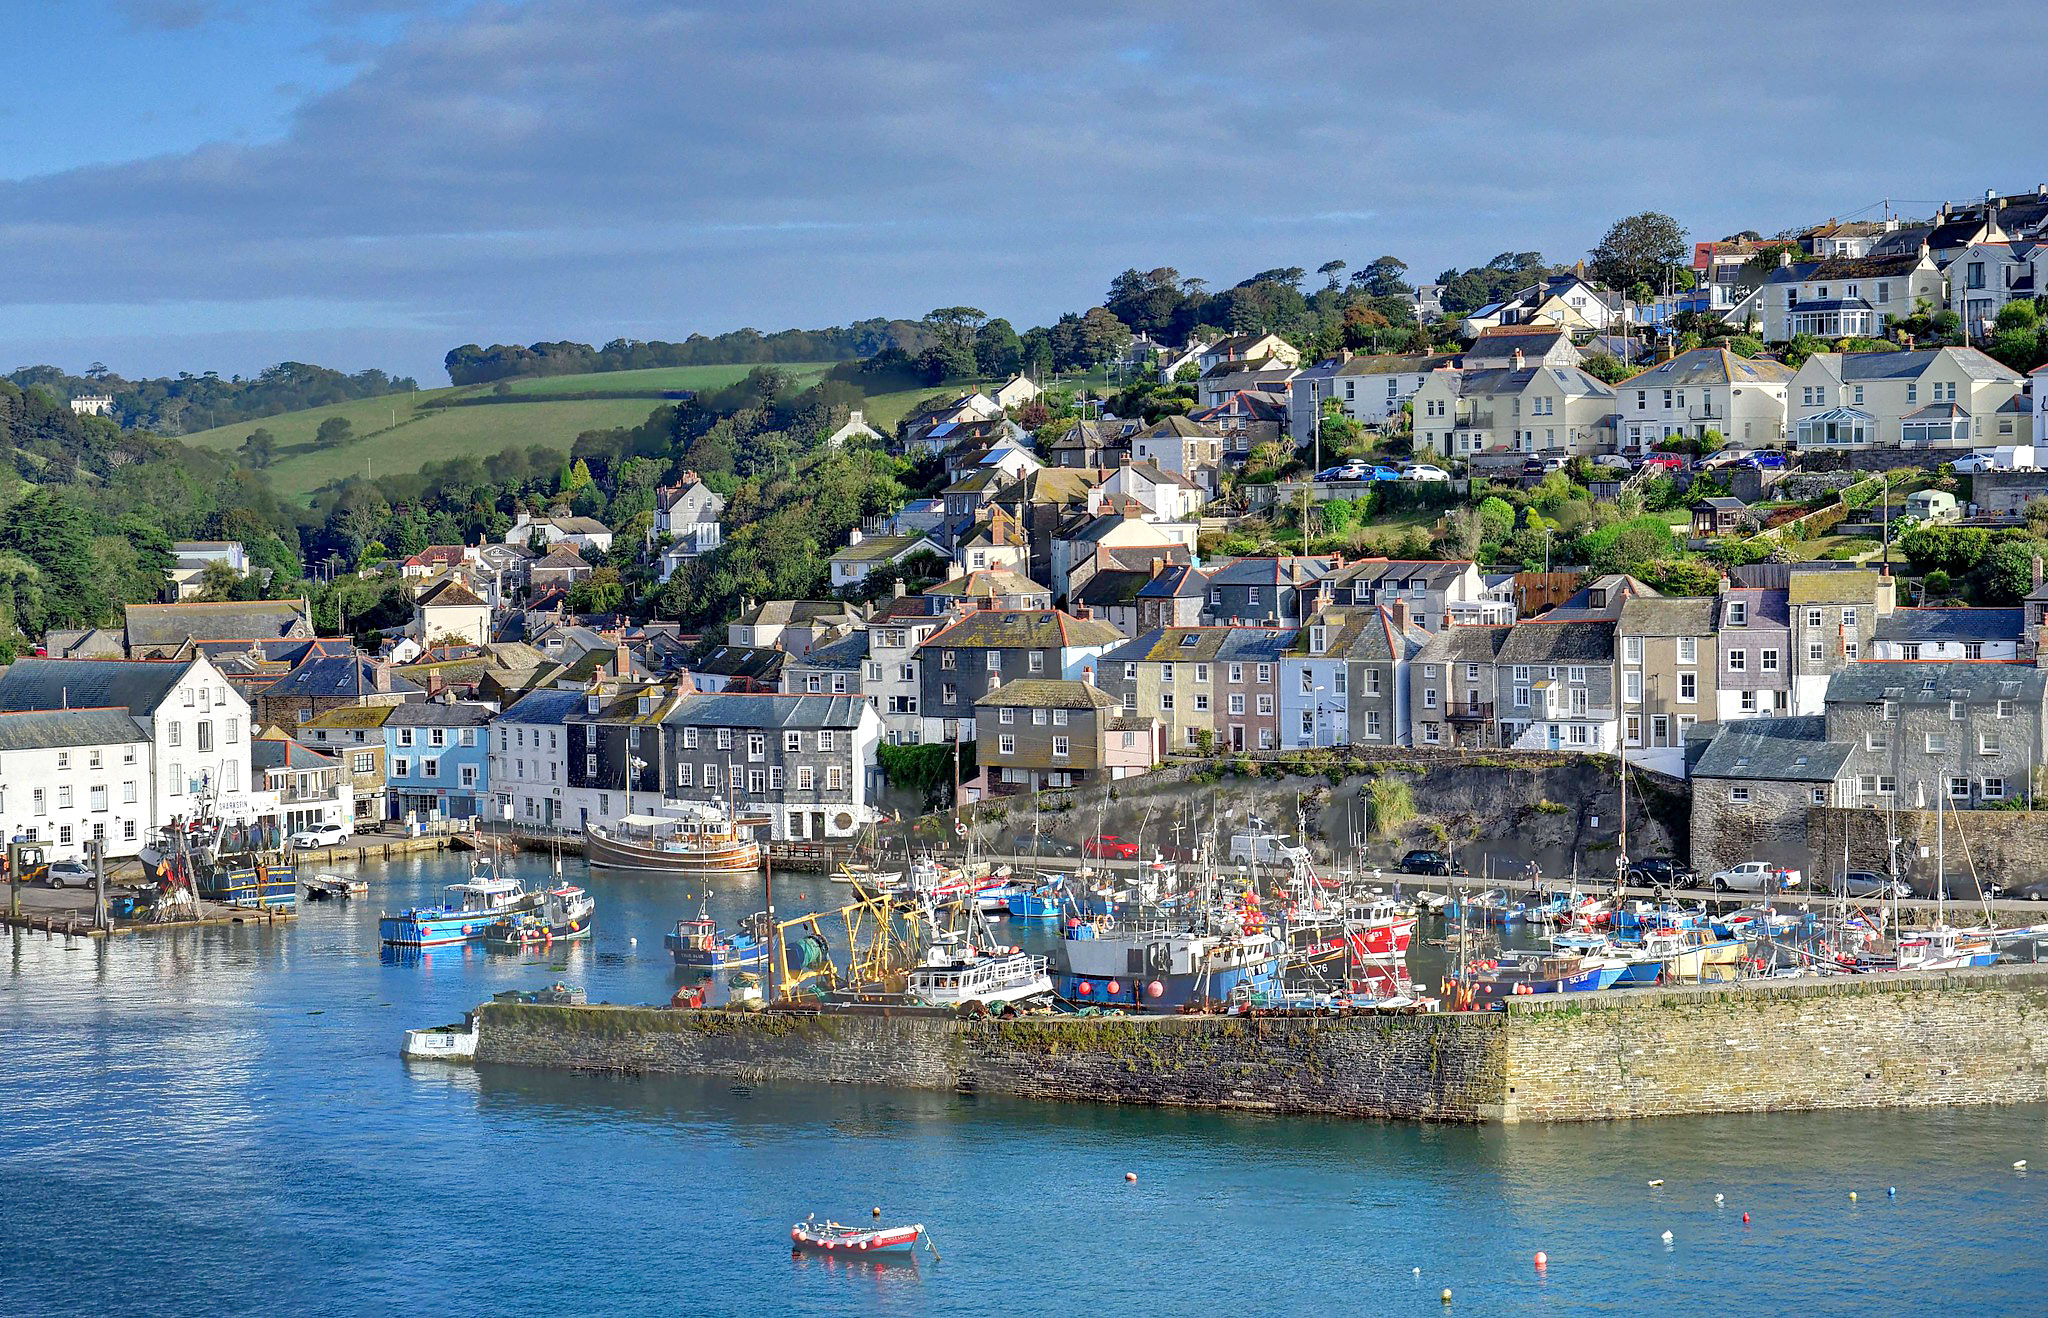 Mevagissey and the inner harbour, Cornwall by Baz Richardson.jpg